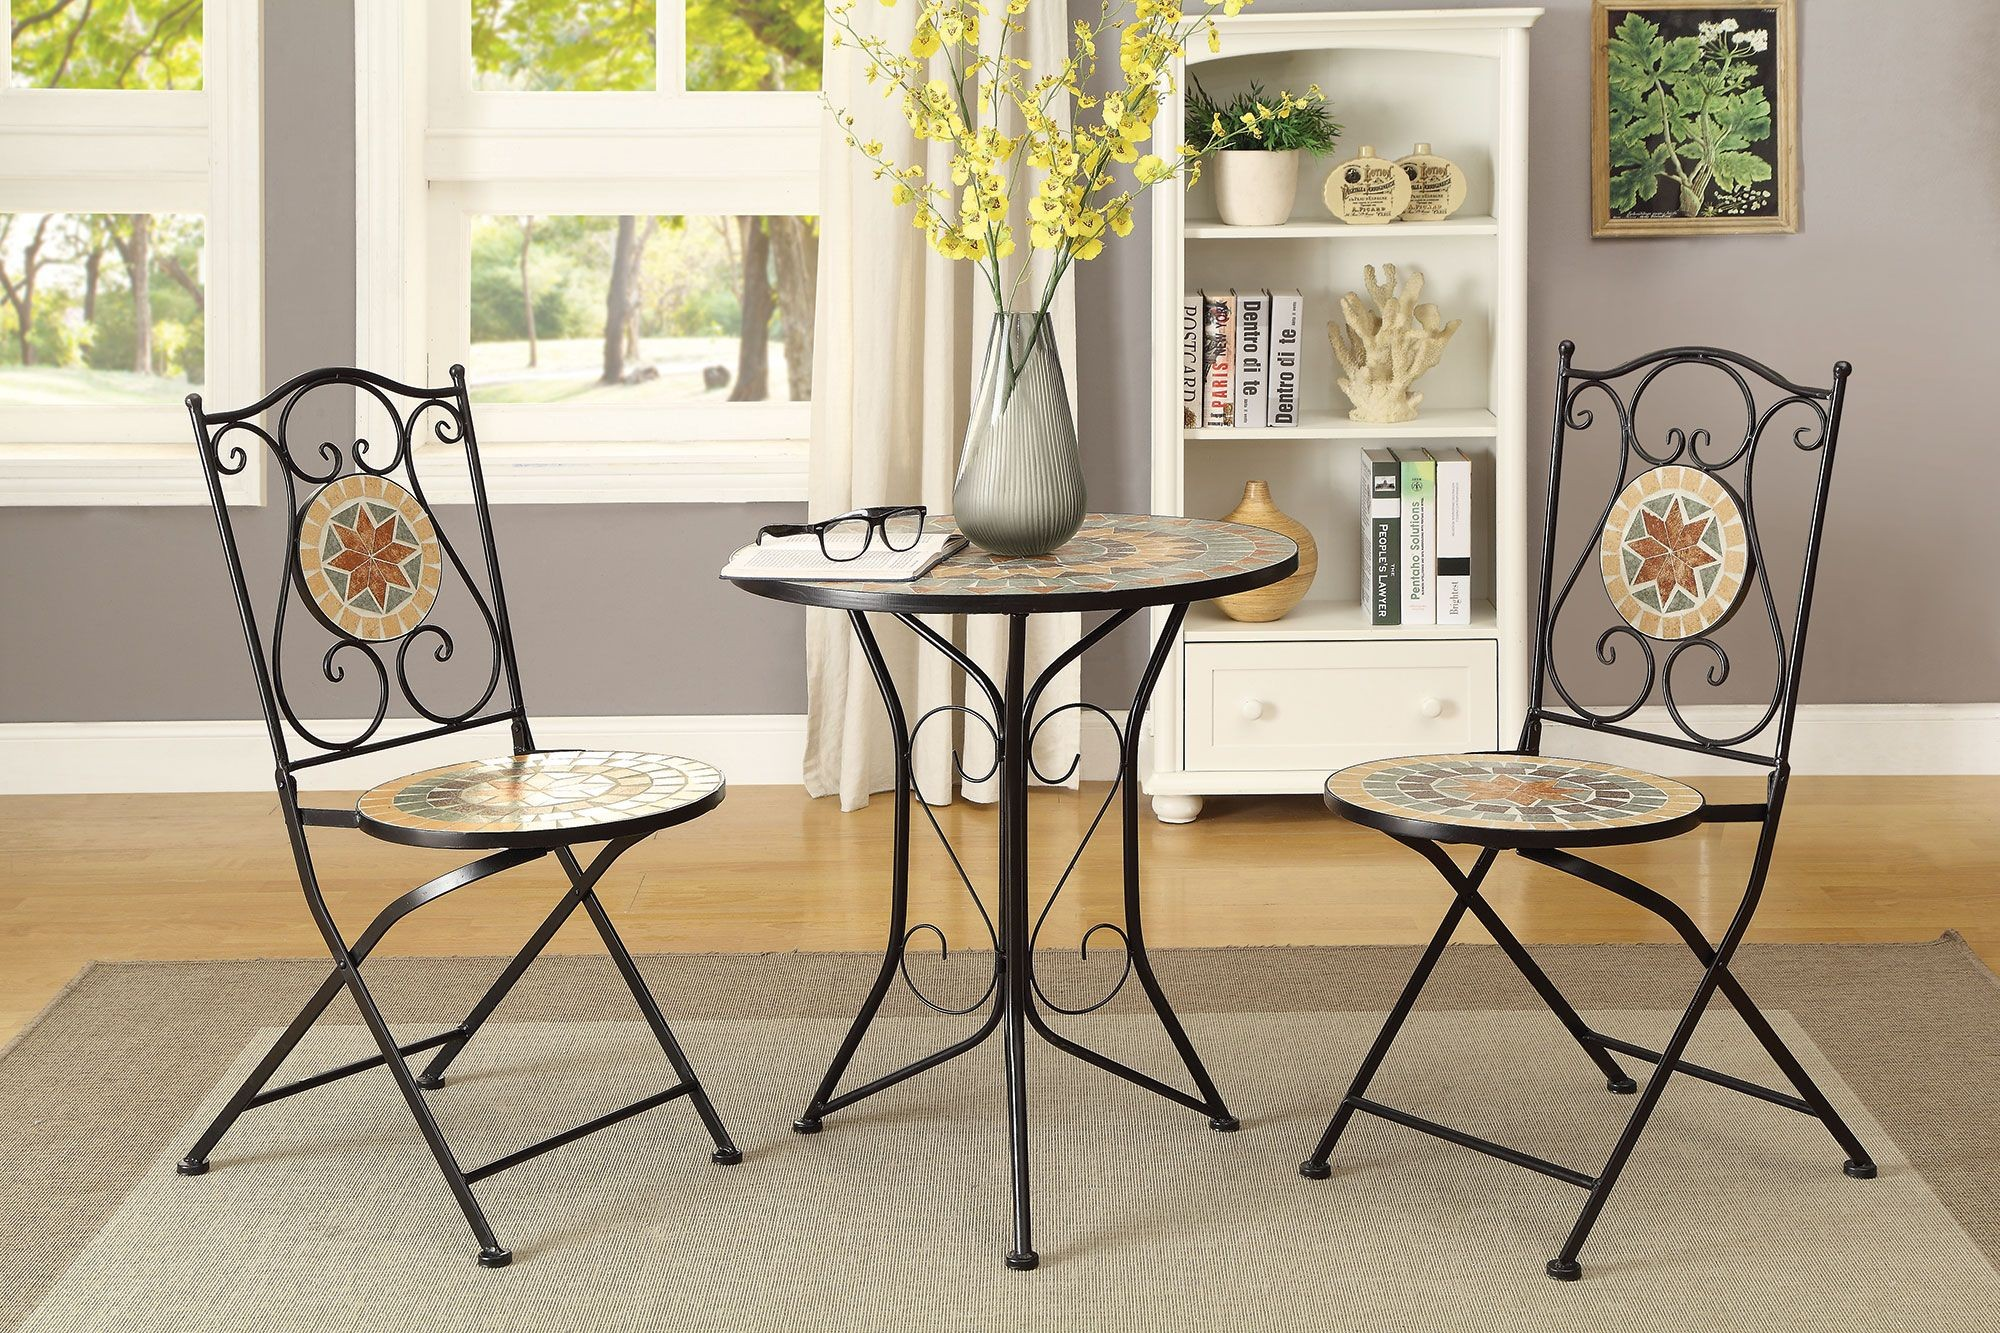 matte black 3 piece dining room set 104165 coaster furniture On 3 piece dining room